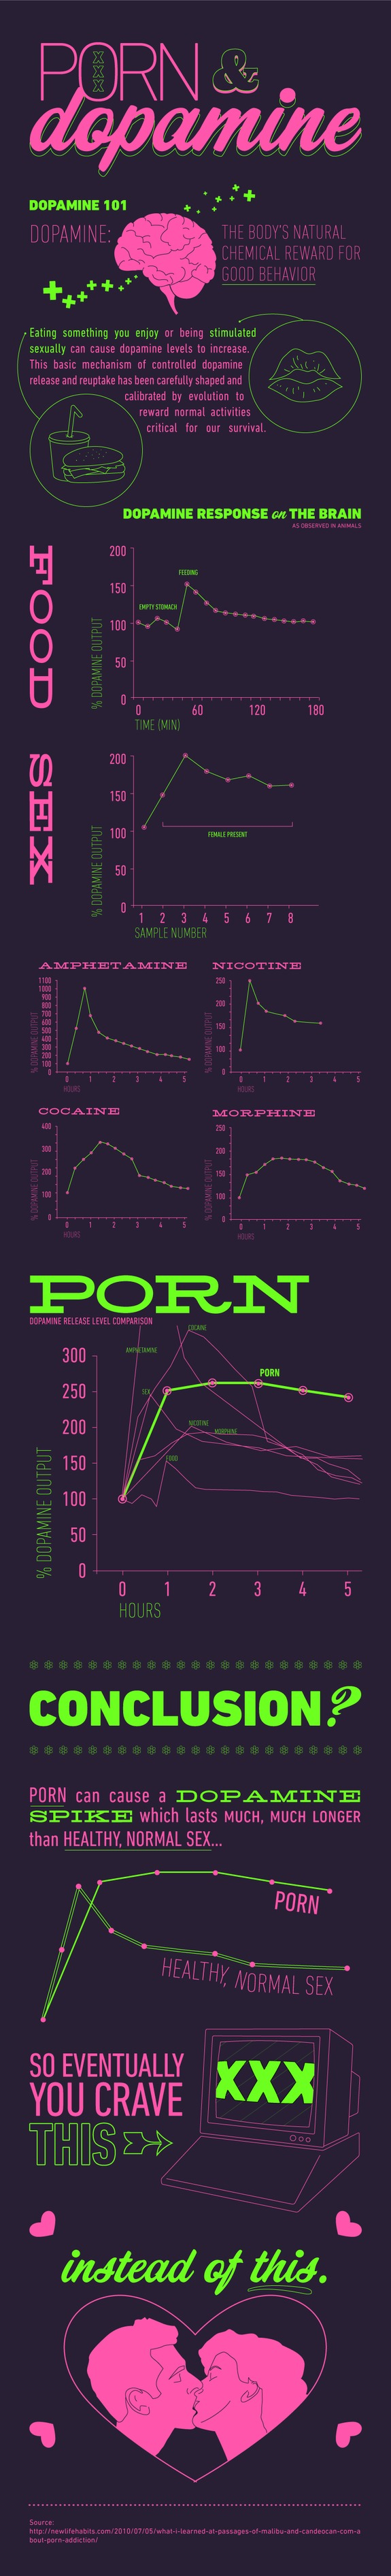 Porn Viewing Effects on Dopamine Levels